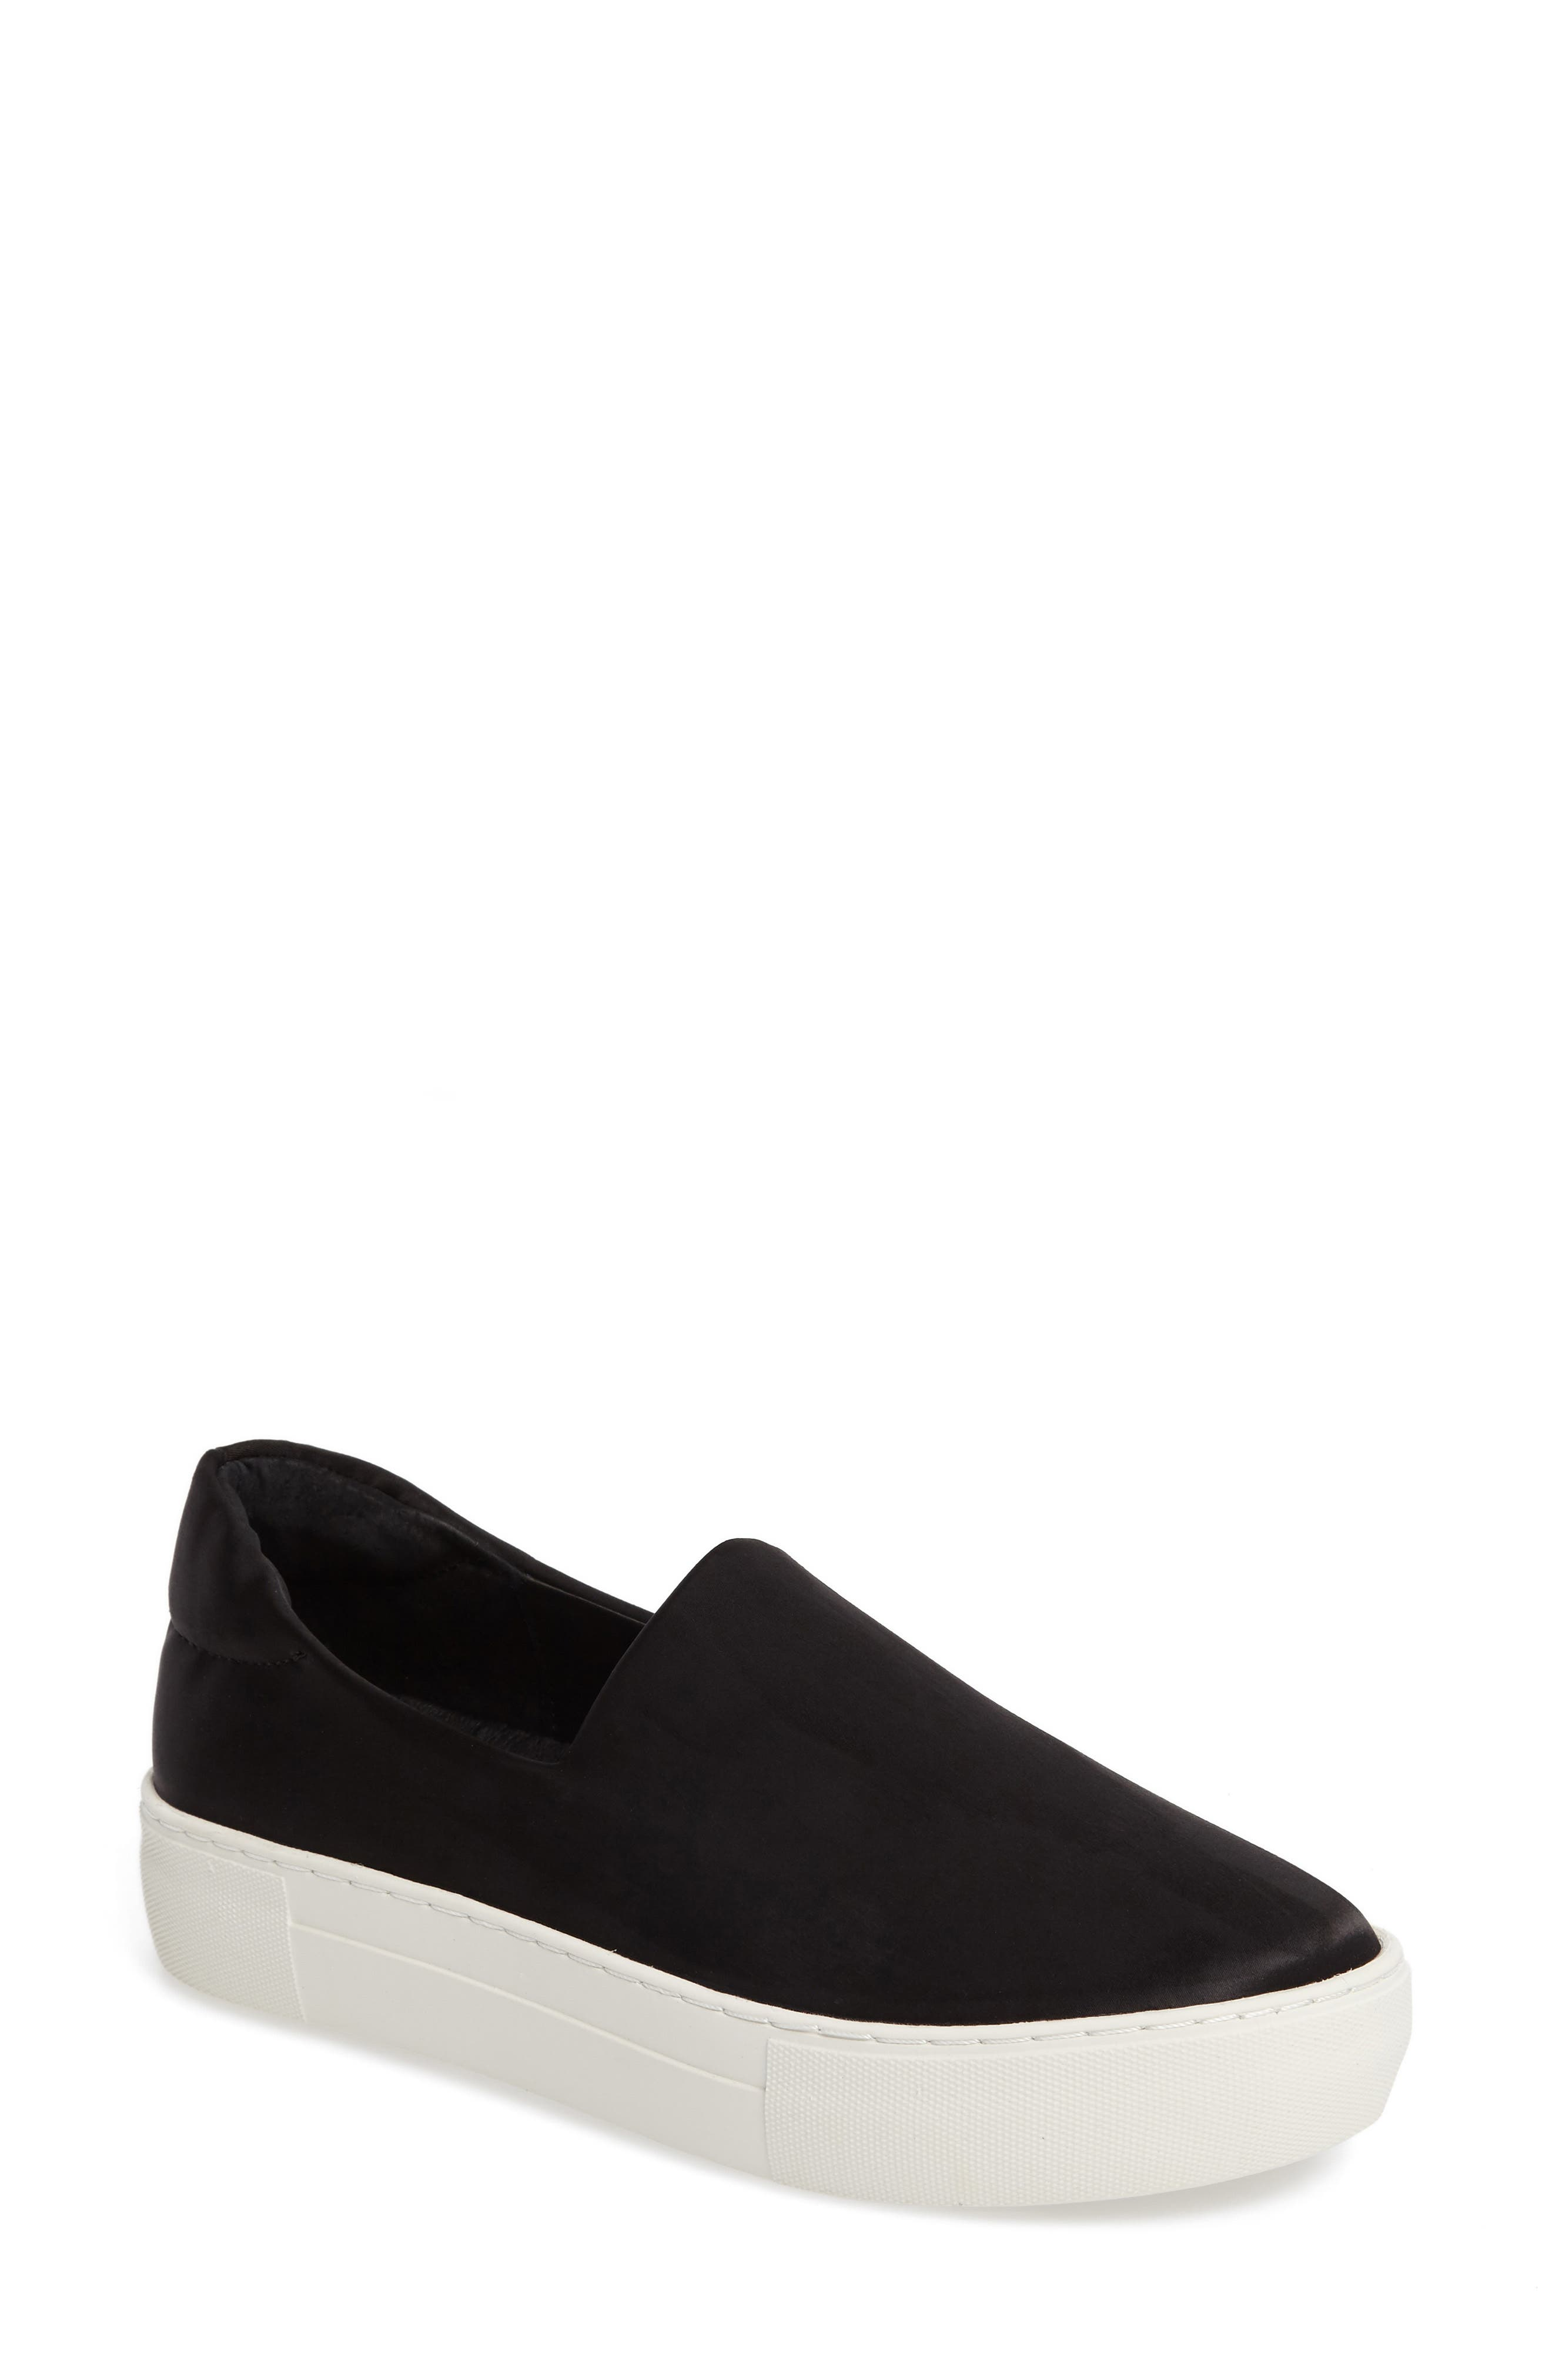 Abba Slip-On Platform Sneaker,                         Main,                         color, 001